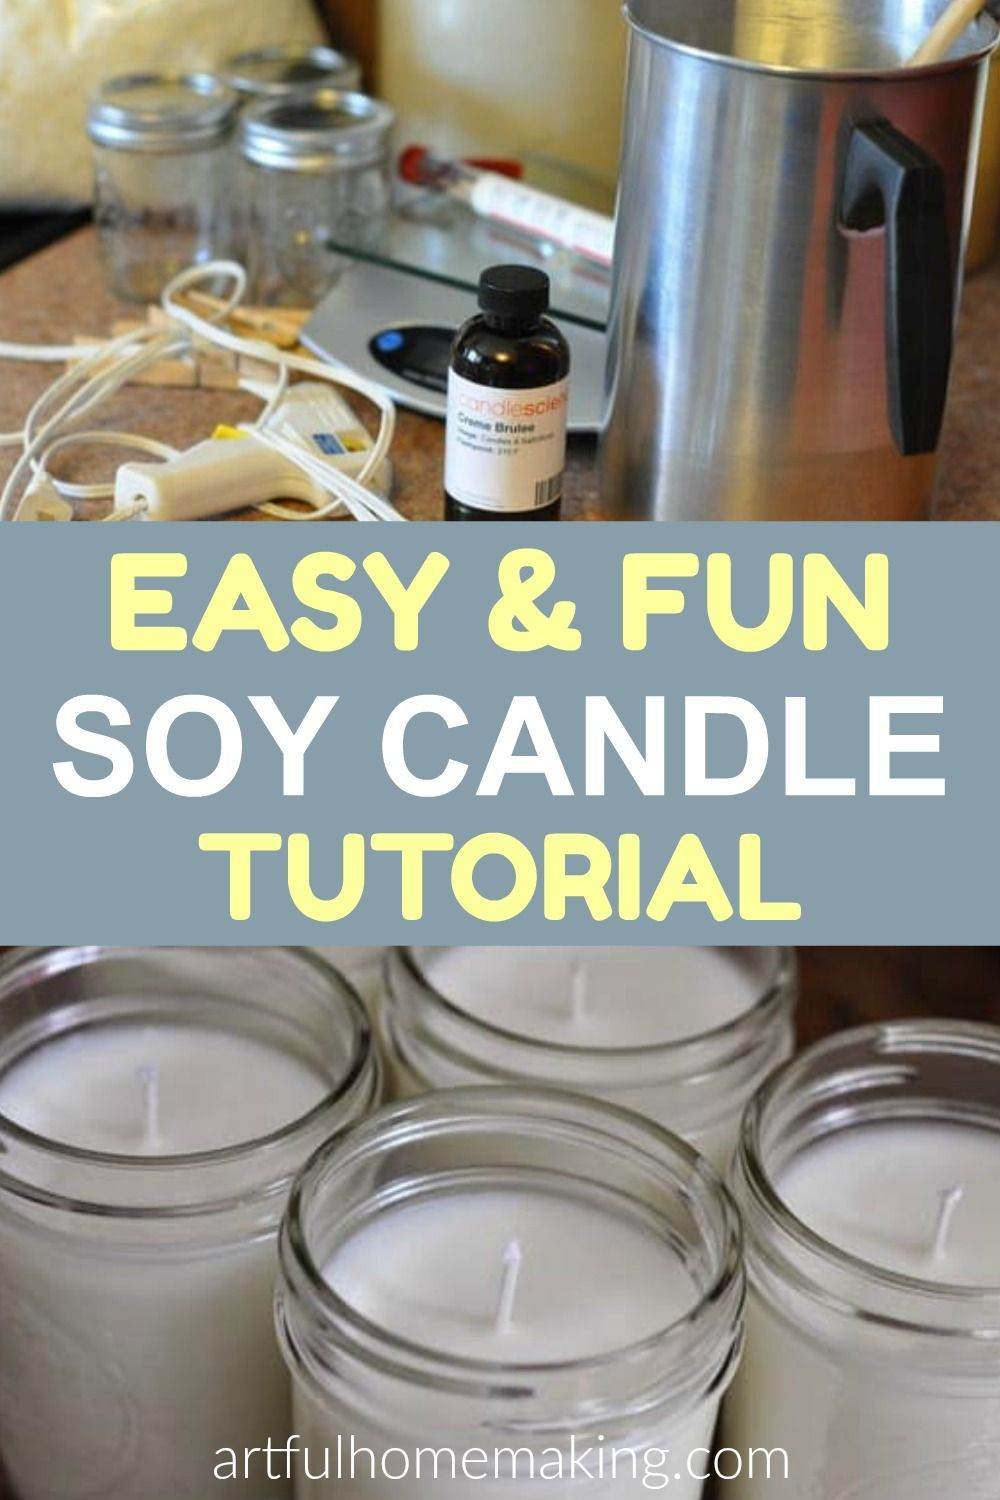 Make Your Own Mason Jar Soy Candles {Tutorial} Soy